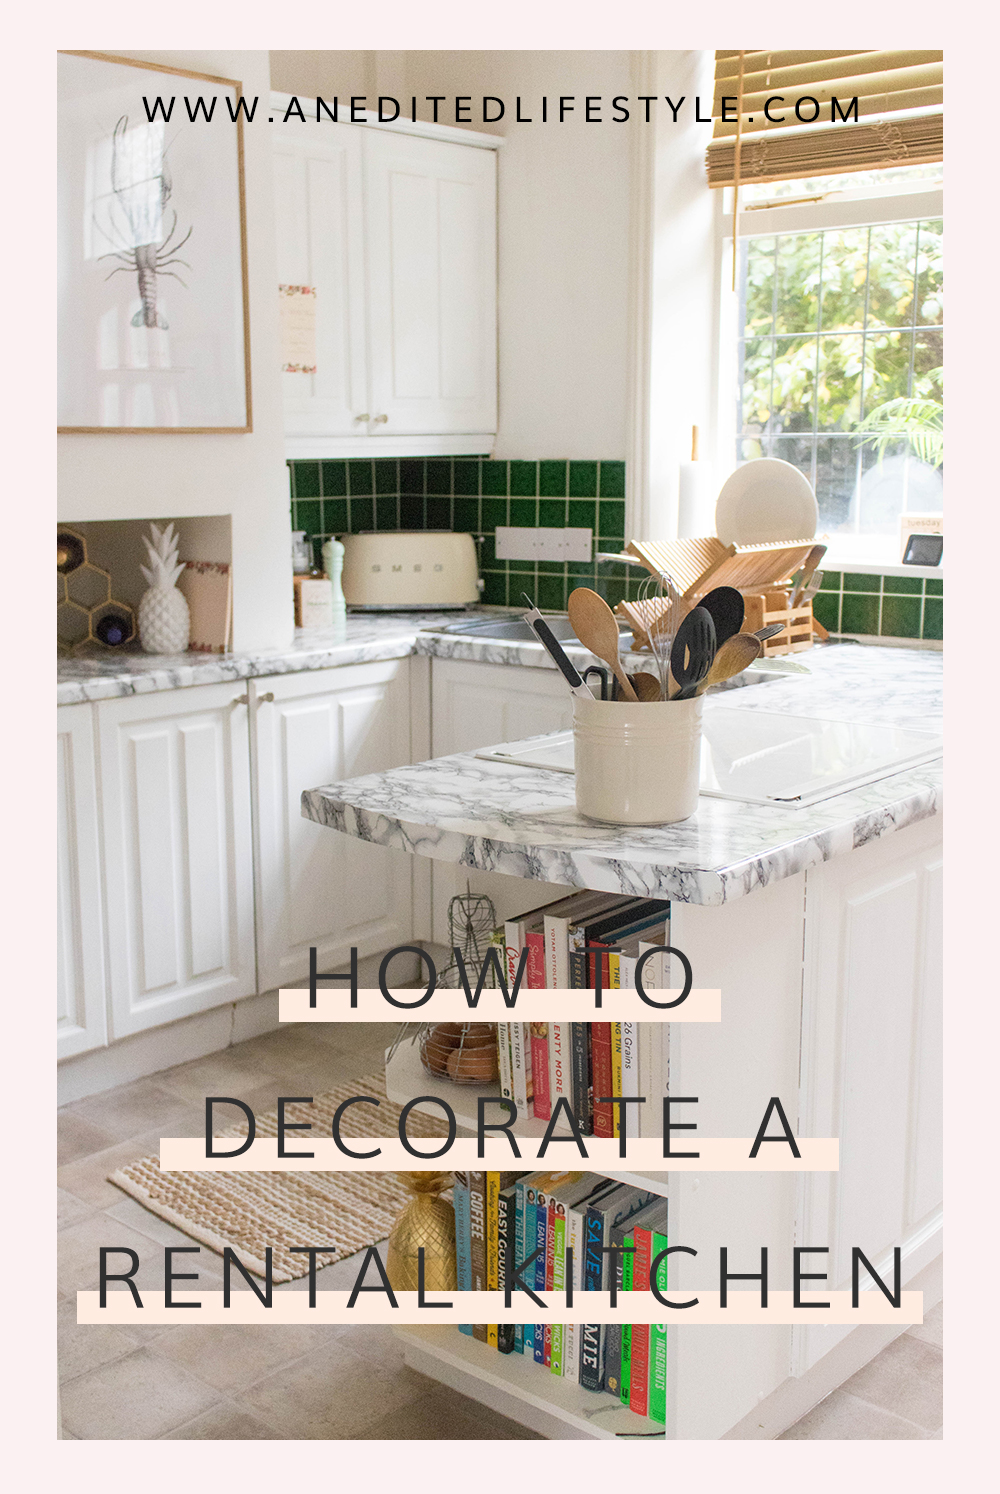 how to decorate a rental kitchen pinterest